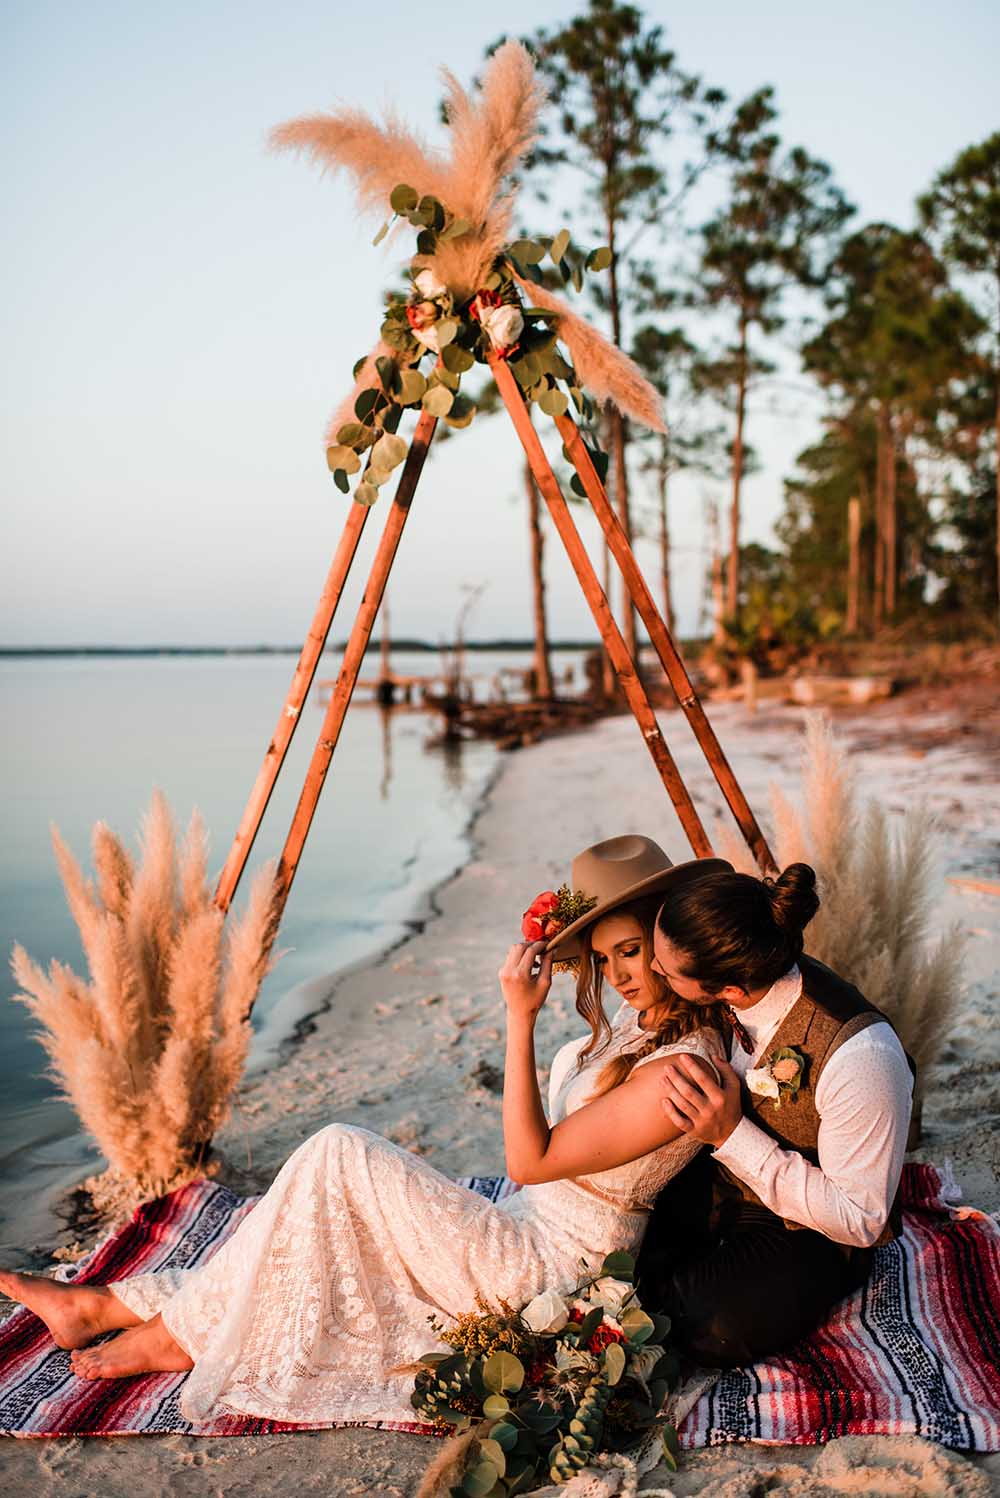 Boho Triangular Wedding Arch with Pompas Grass | photo by MBM Photography | featured on I Do Y'all